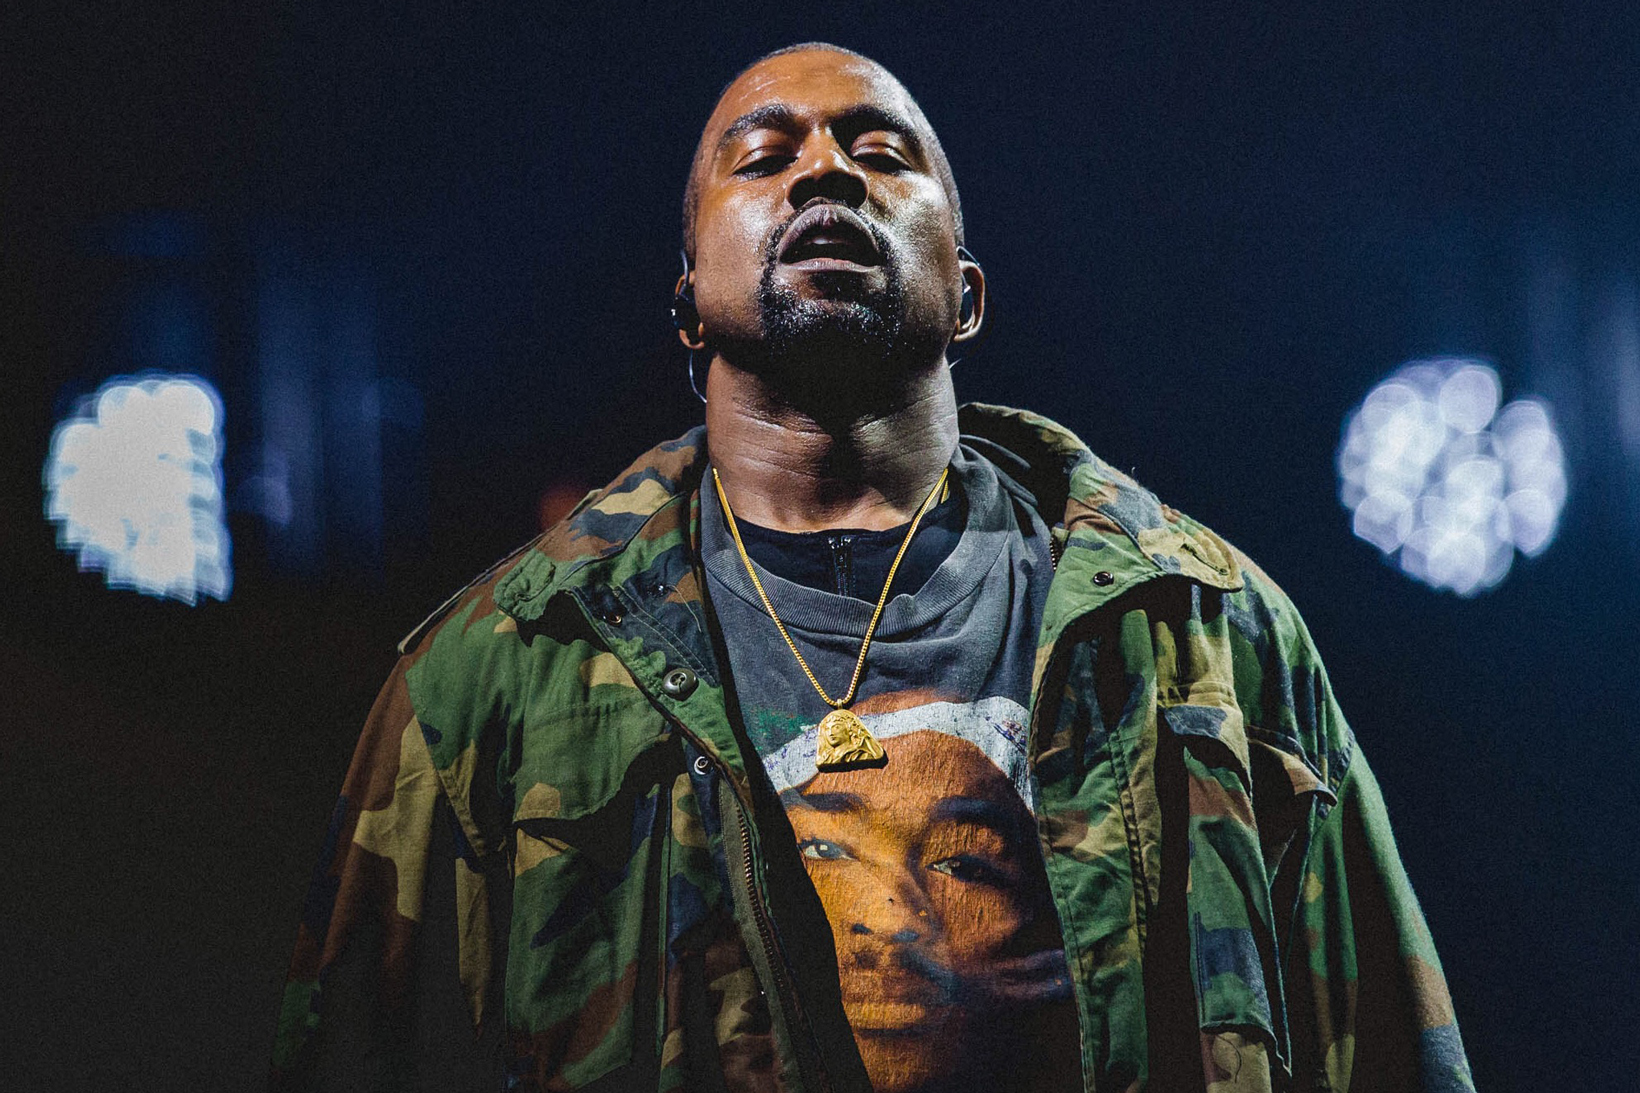 """Kanye West Gets Four Minutes to Do """"As He Pleases"""" for the 2016 MTV VMAs"""